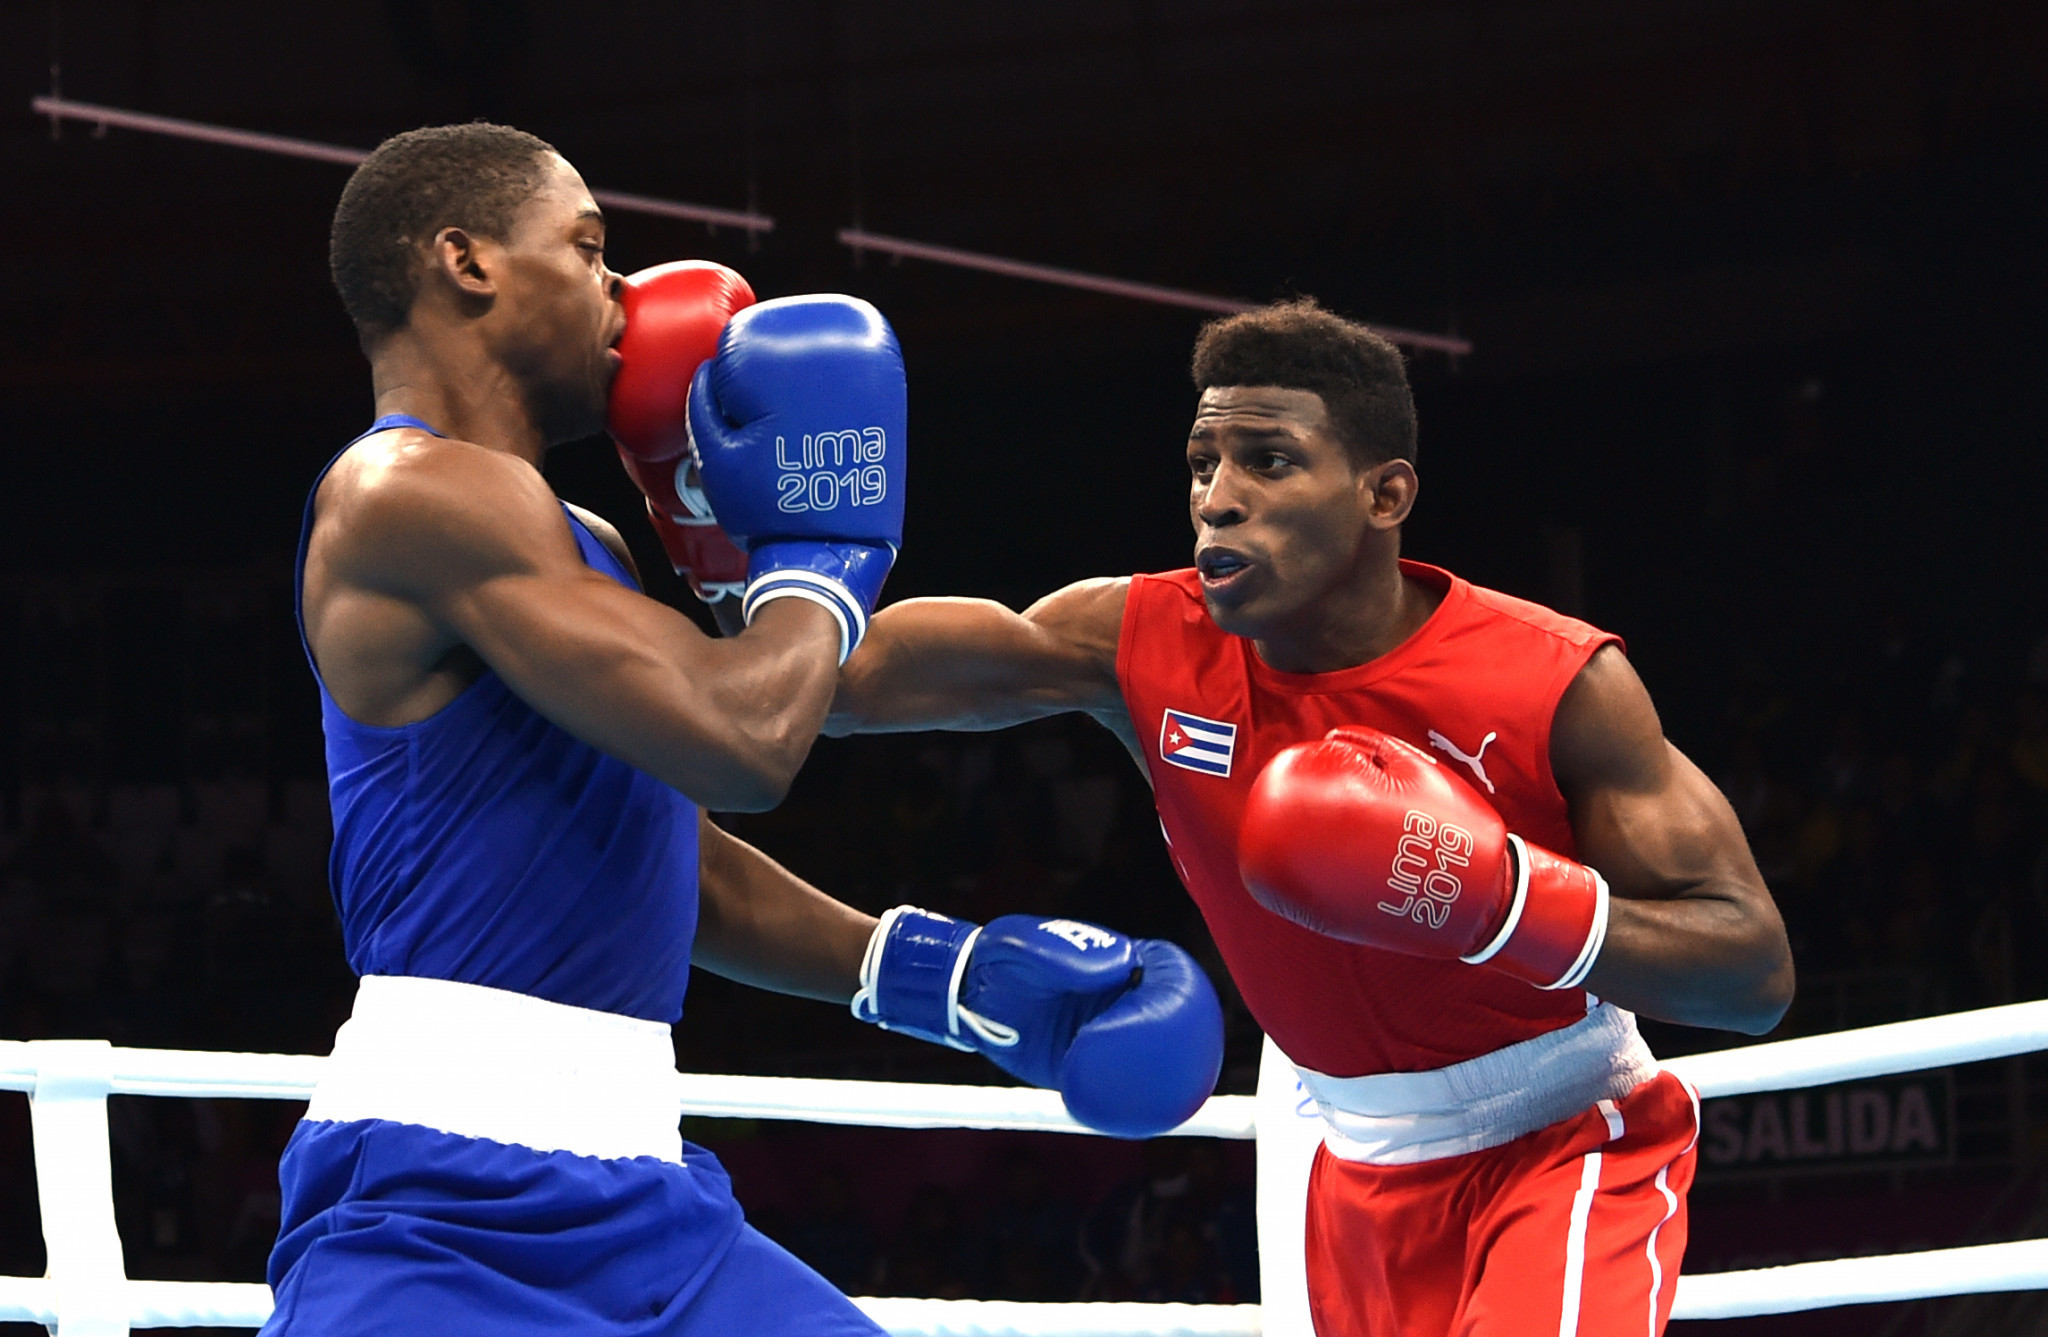 Cuba are the most successful team at the Boxing World Cup, claiming seven titles so far ©Getty Images